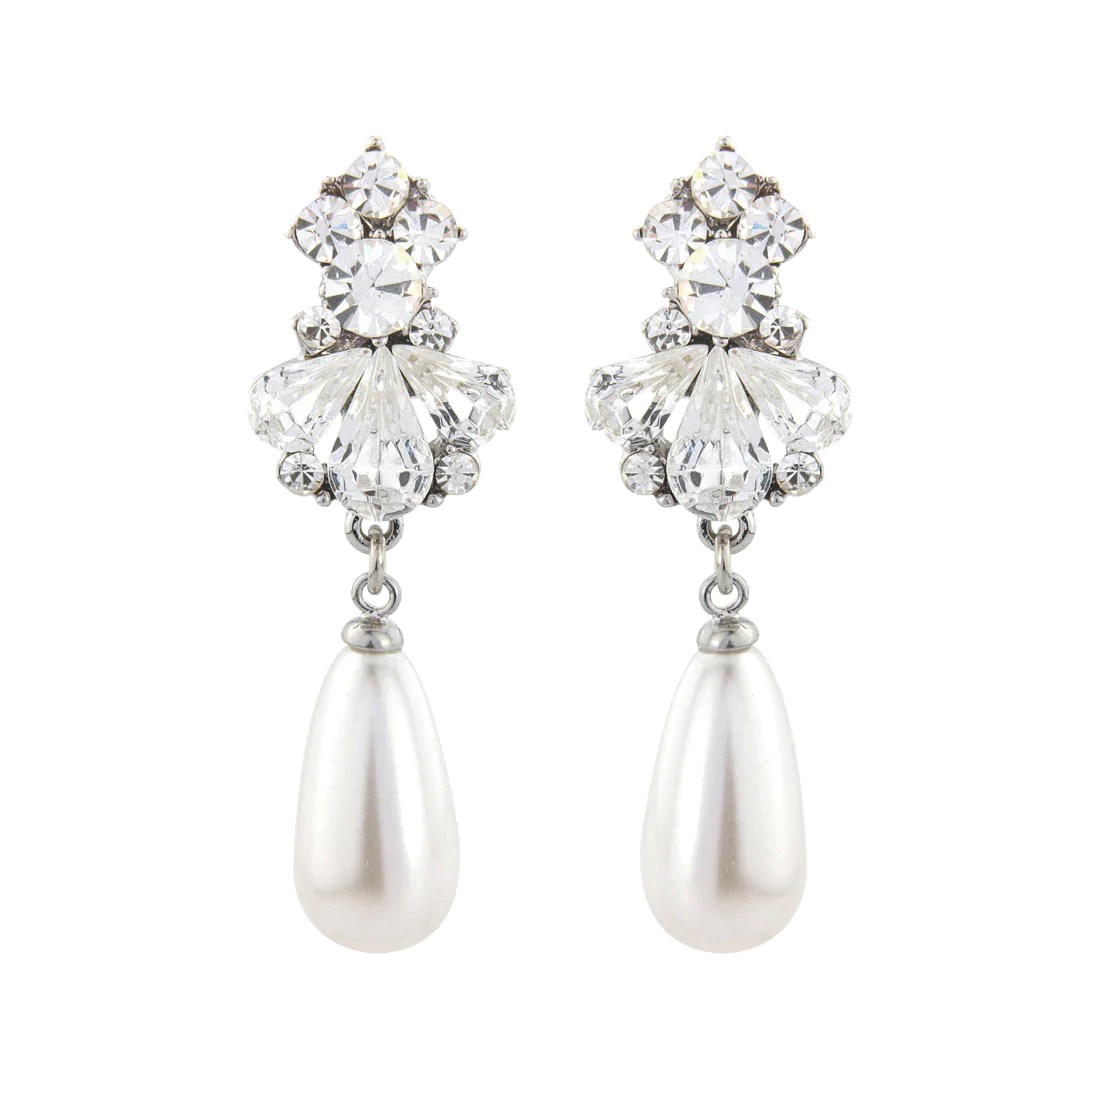 Art Deco Style Earrings Uk Bridal Wedding Earrings Glitzy Secrets Uk